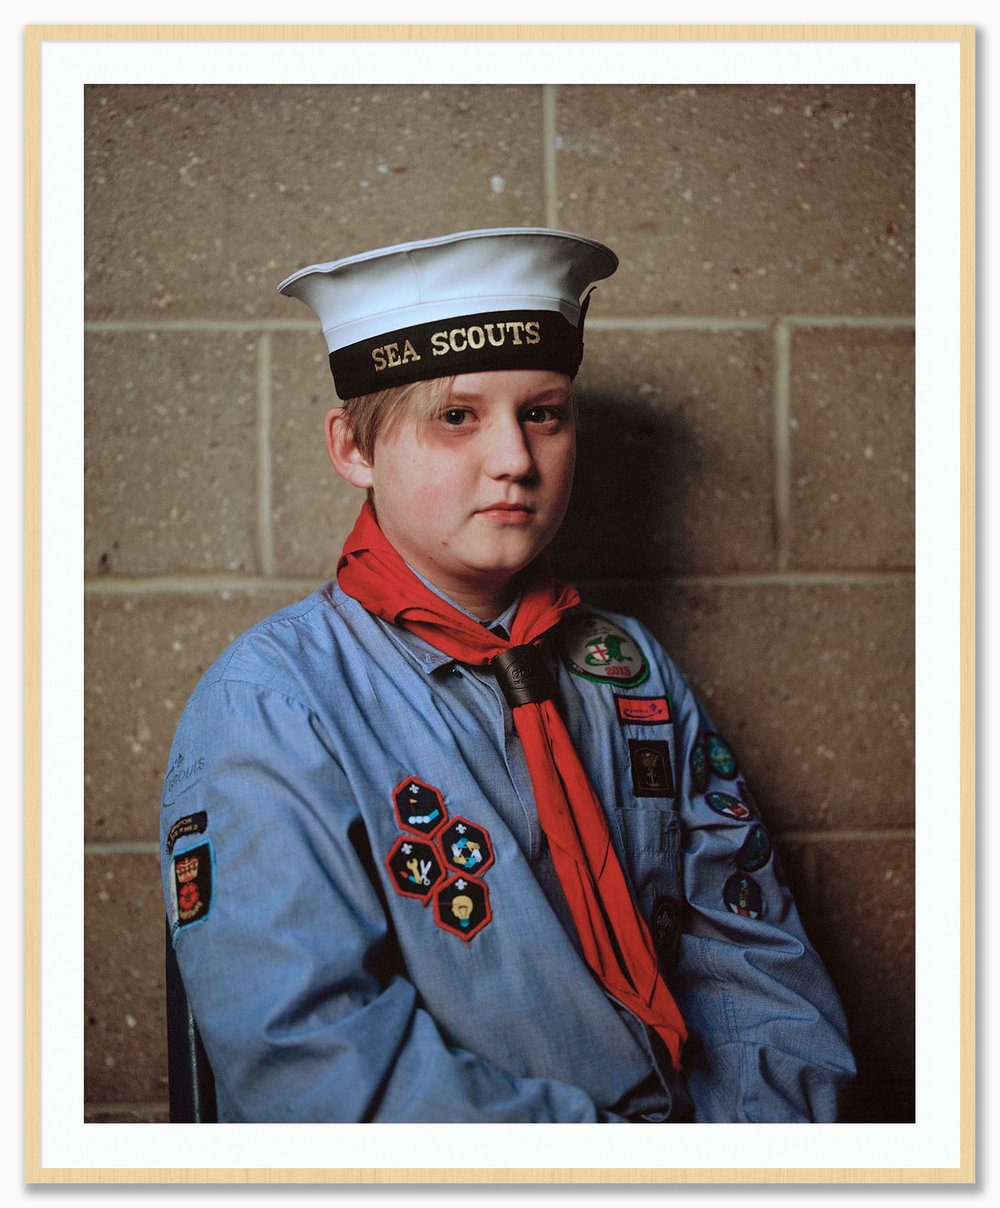 Untitled III. Sea Scout. England. Izzy de Wattripont _Mat_Maple.jpg